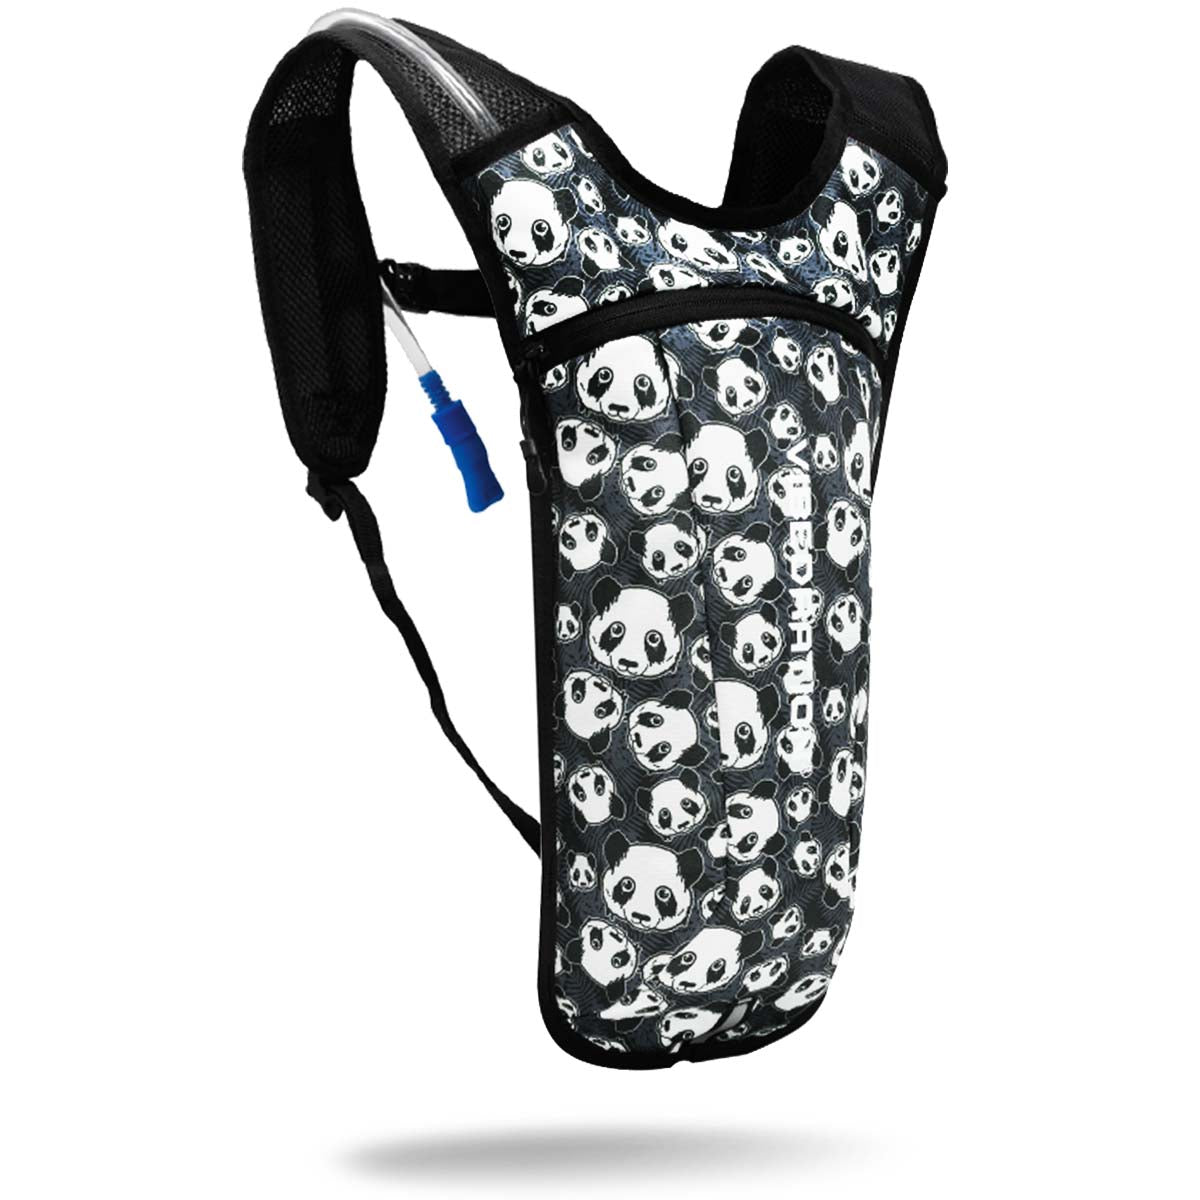 Panda Hydration Pack for Music Festivals and Raves